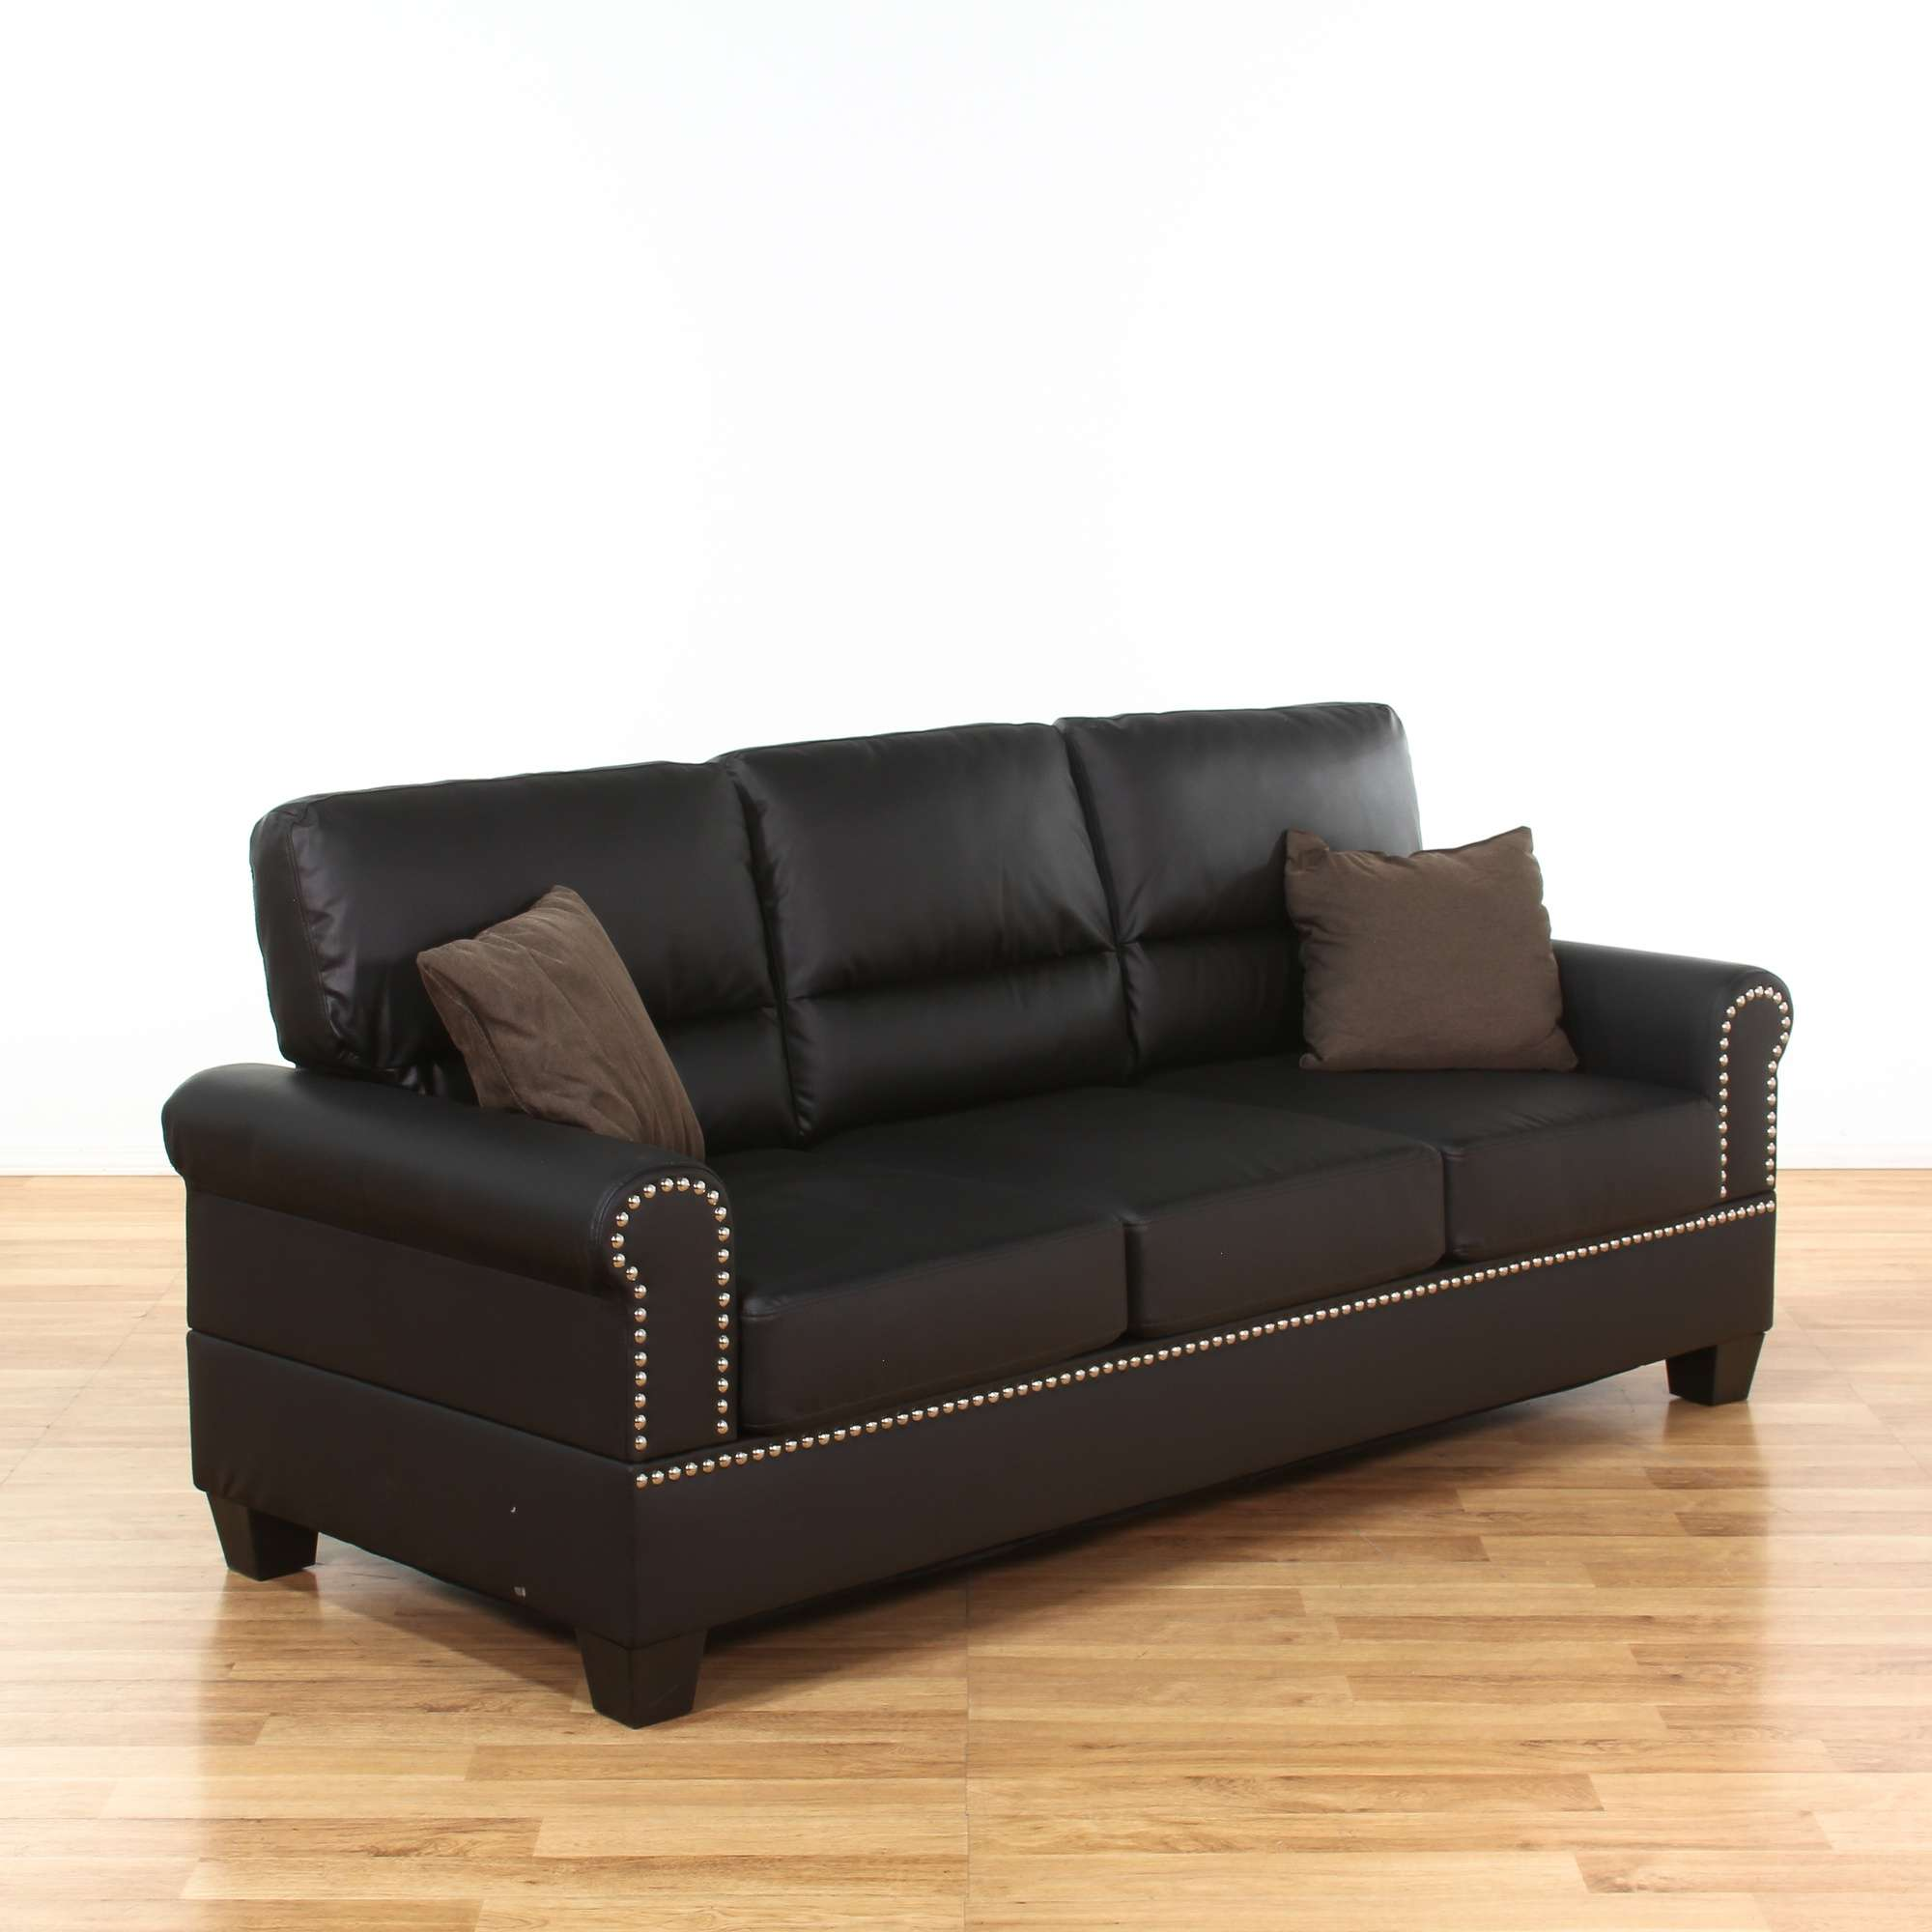 Boyster Black Faux Leather Sofa W